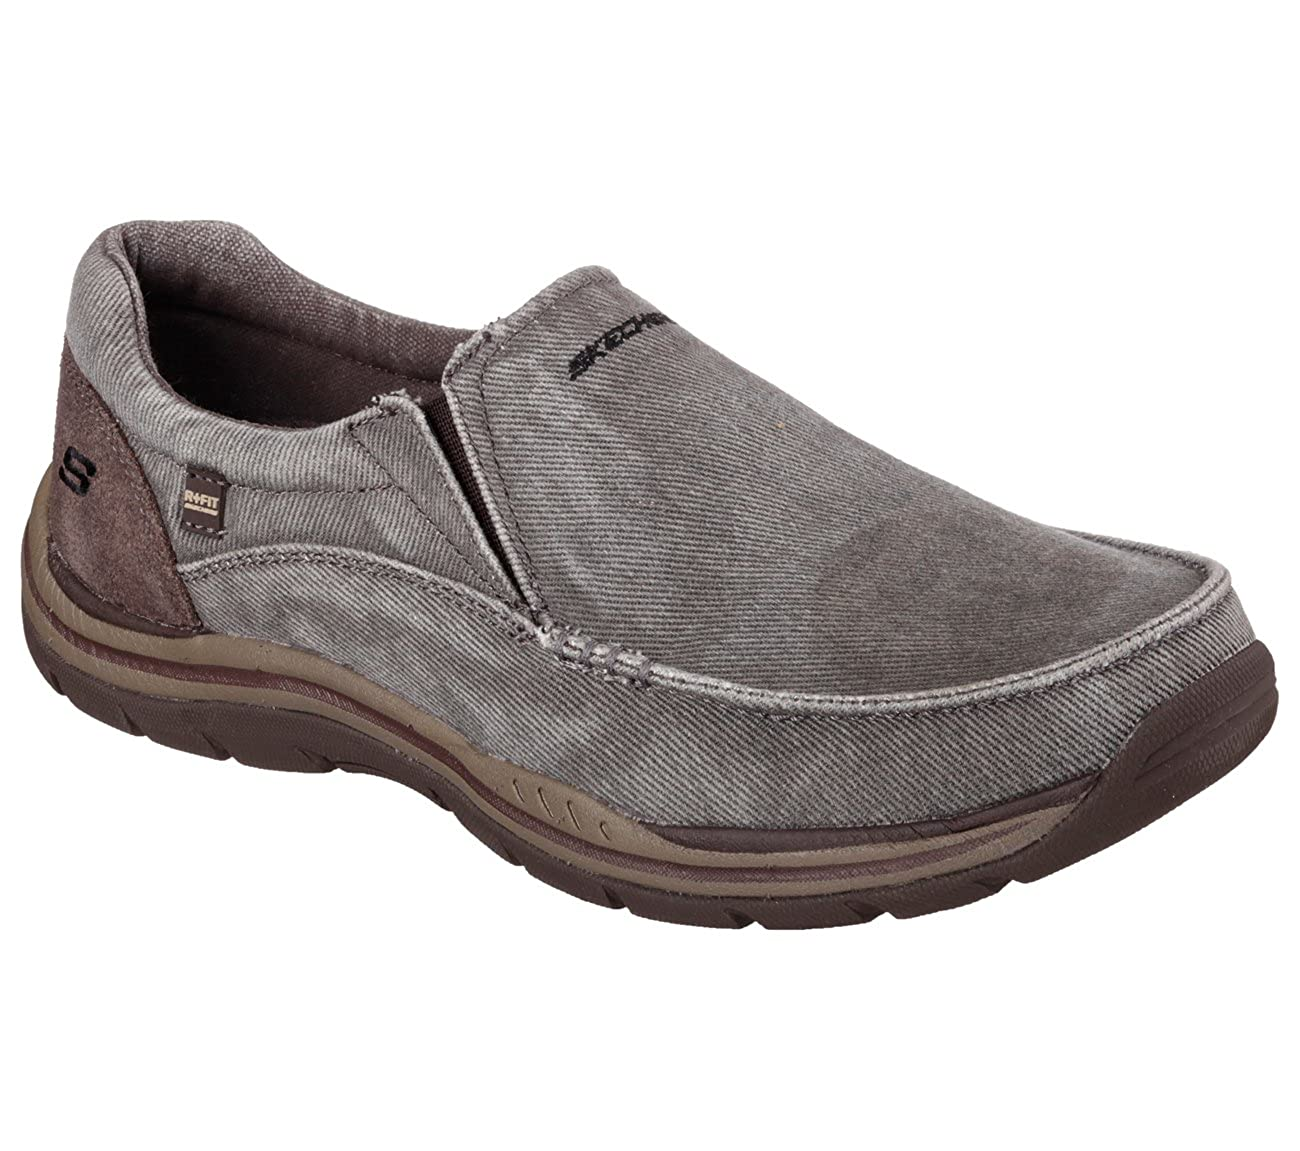 a4994e51 Amazon.com | Skechers Relaxed Fit Expected Avillo Mens Slip On Loafers  Shoes Brown 10.5 | Loafers & Slip-Ons